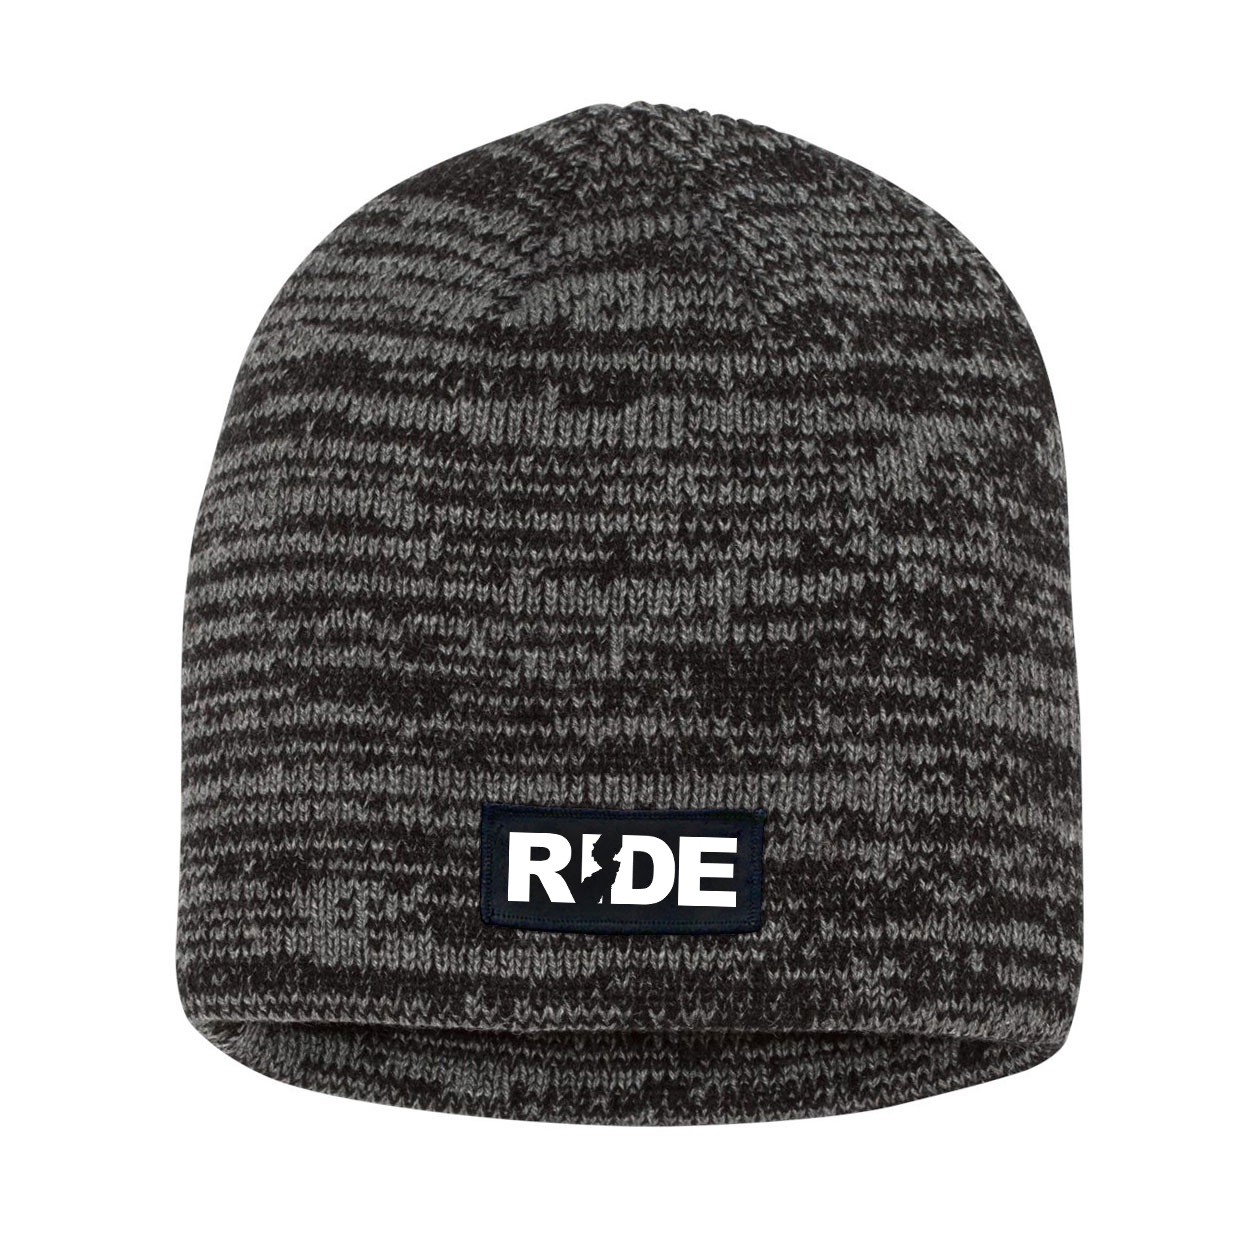 Ride New Jersey Night Out Woven Patch Skully Marled Knit Beanie Black/Gray (White Logo)